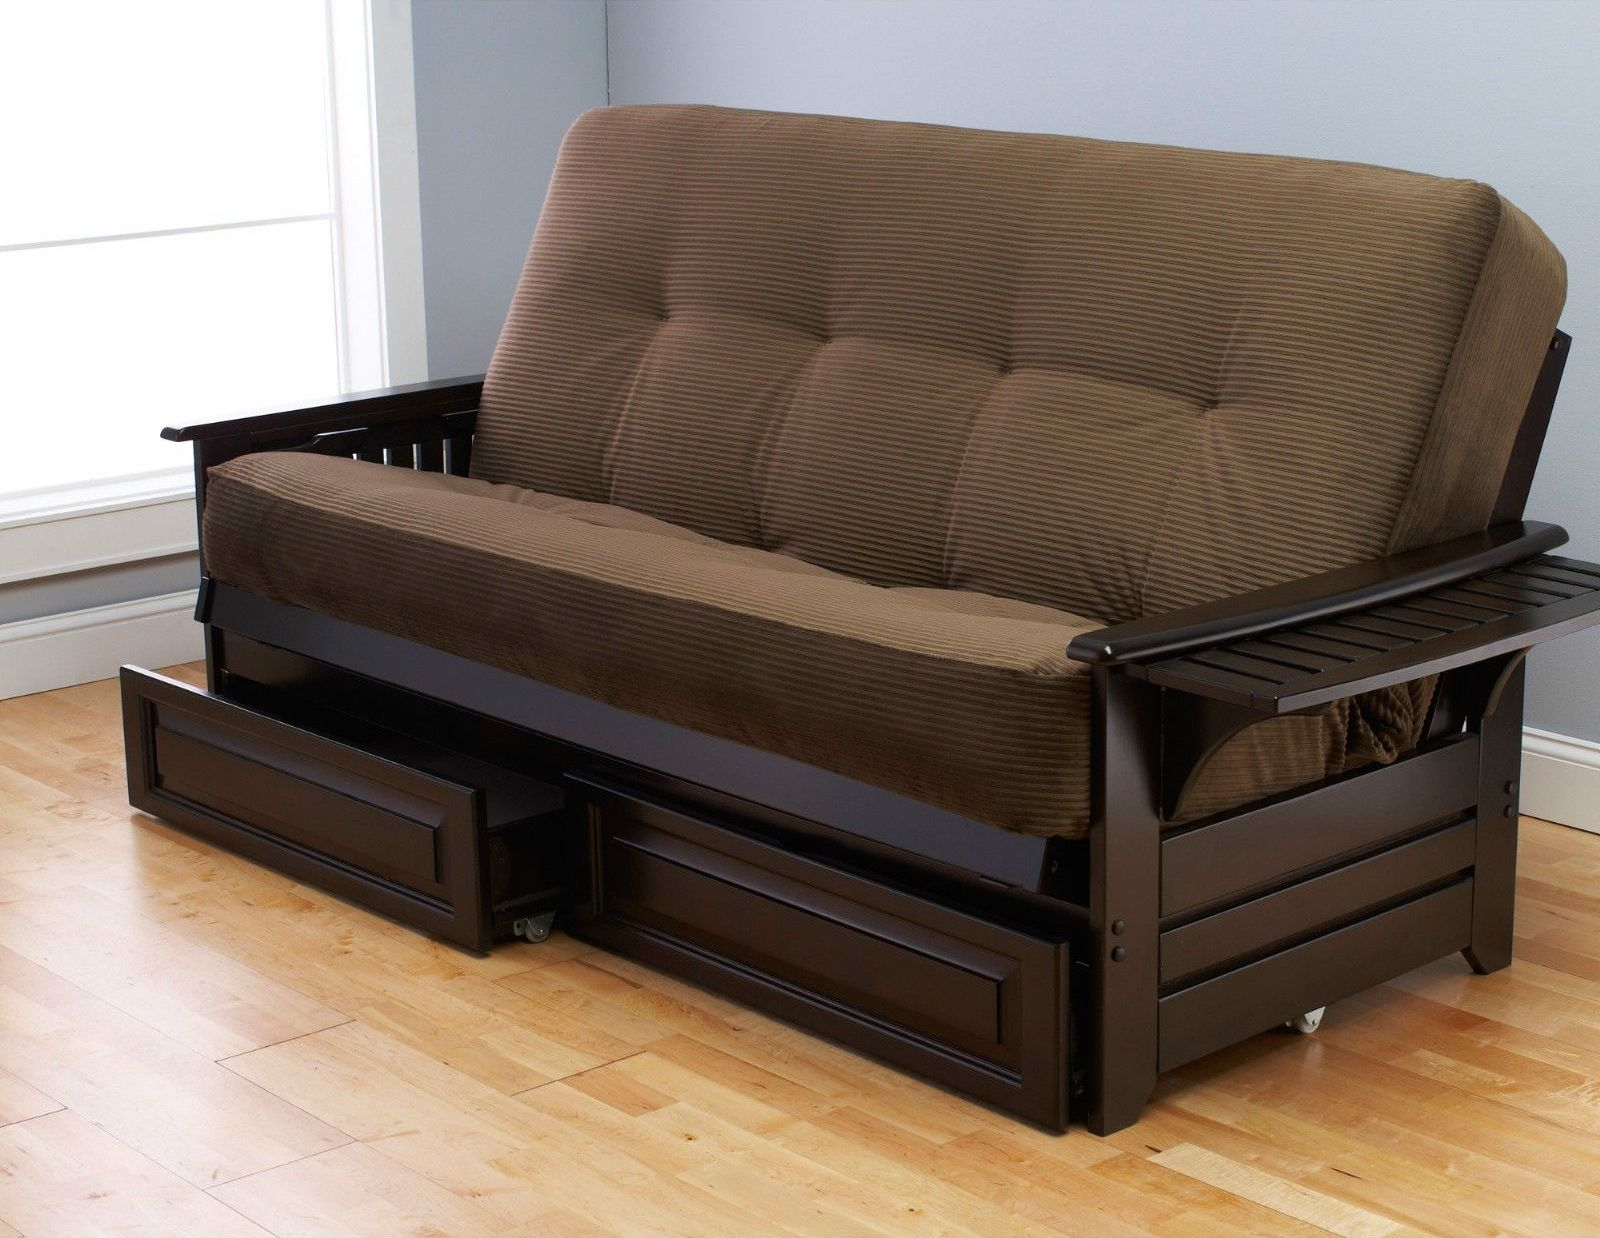 Futon Nice Queen Size Futon Frame And Mattress Set Collection Innovative